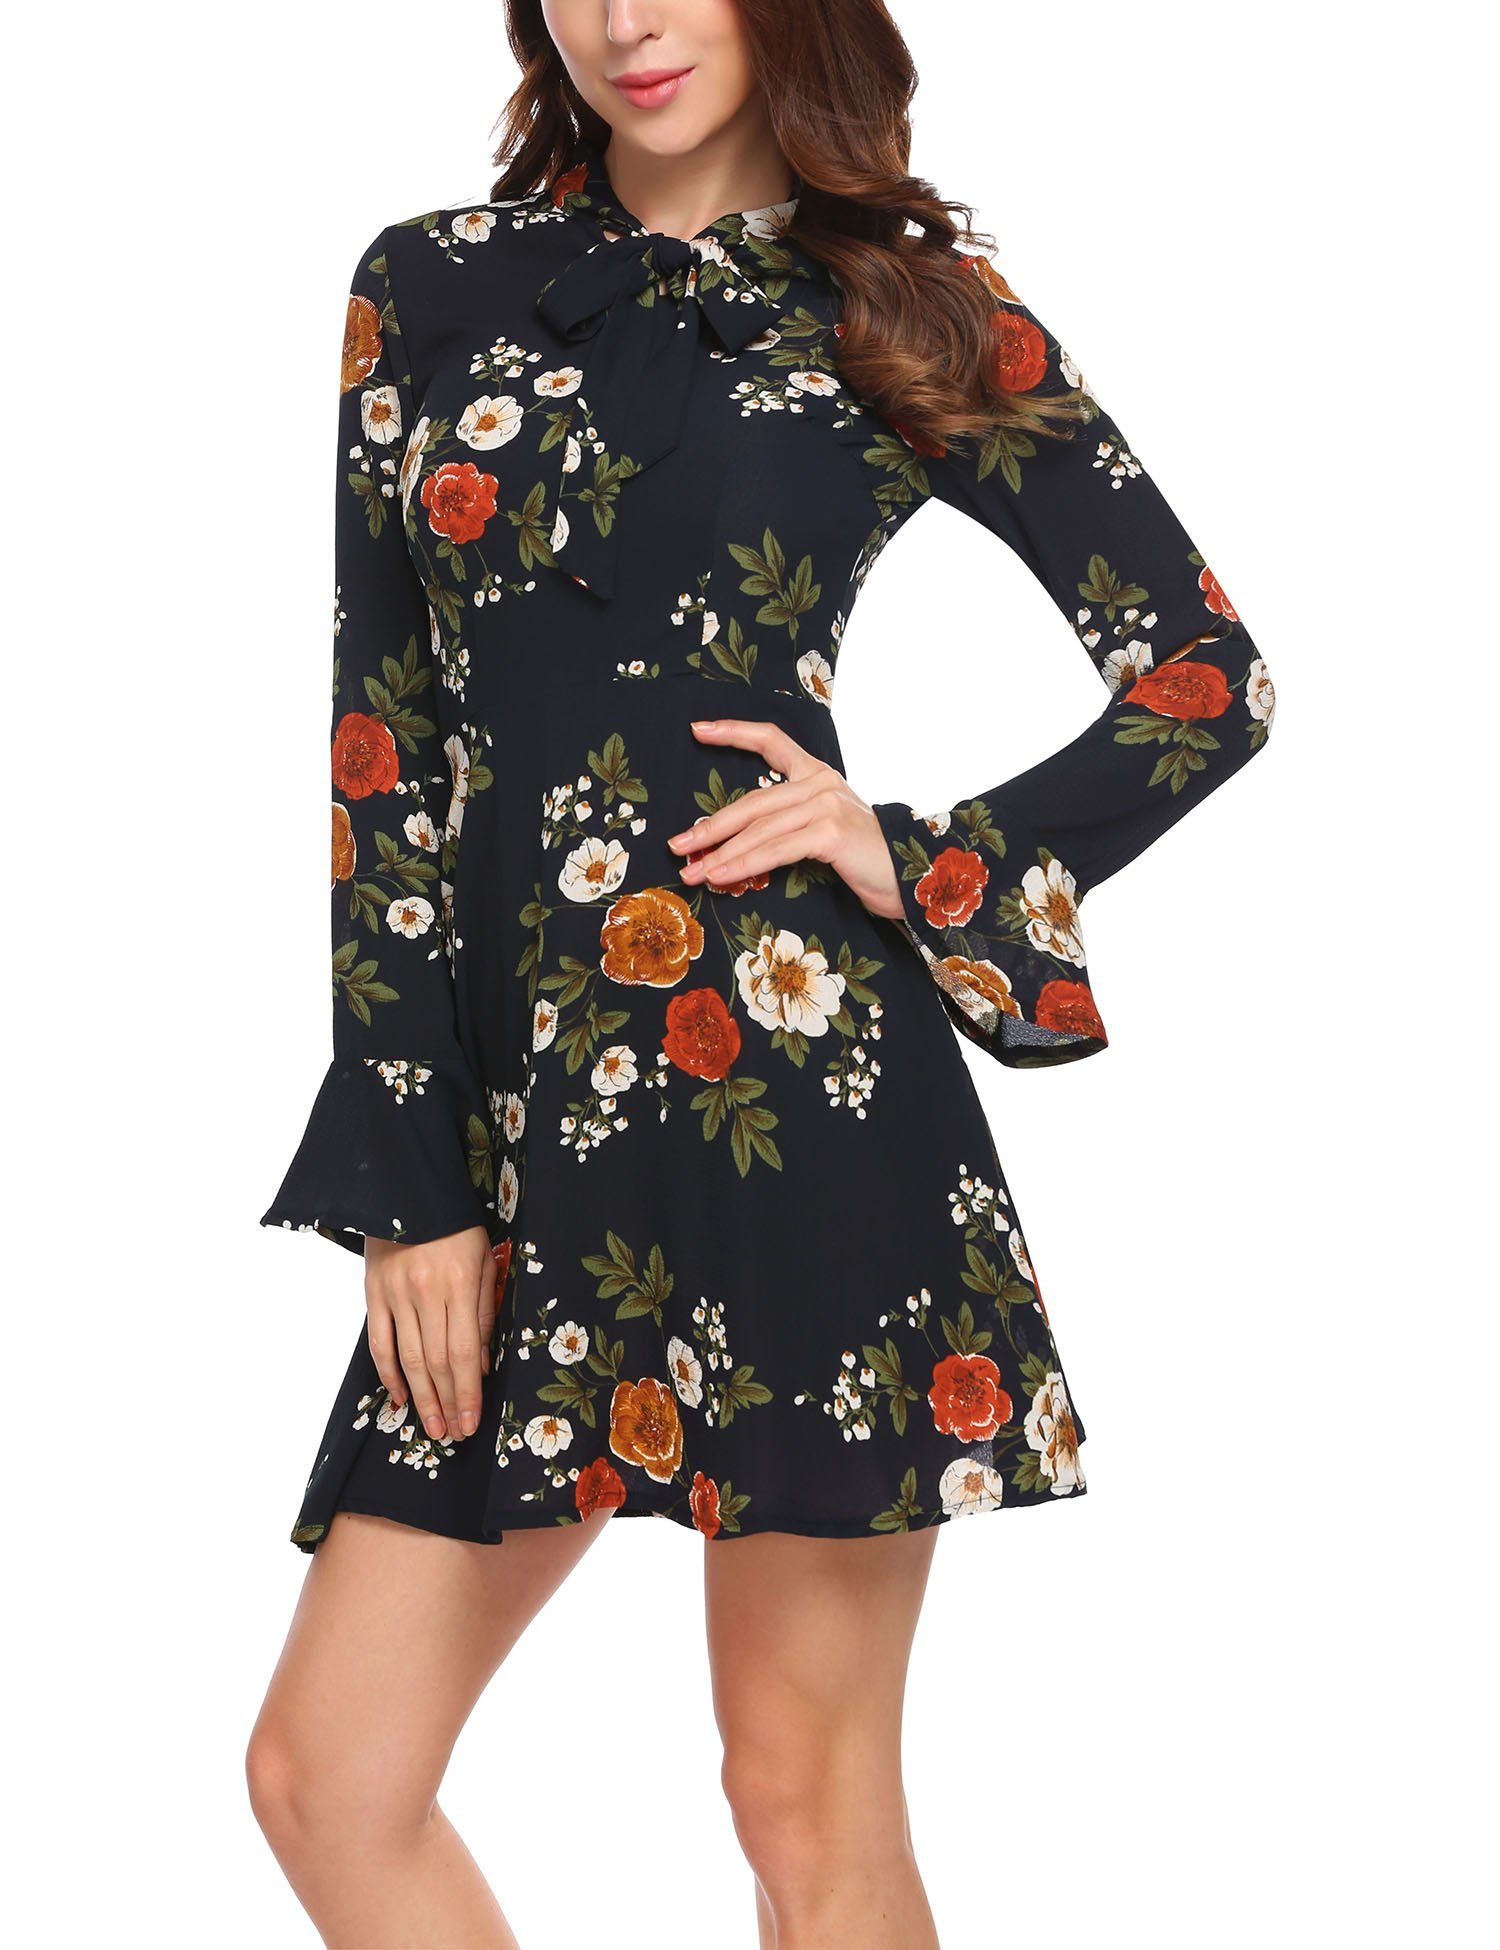 ACEVOG Women's Casual Floral Print Bell Sleeve Fit and Flare Dress,XX-Large,Floral 1 by ACEVOG (Image #1)